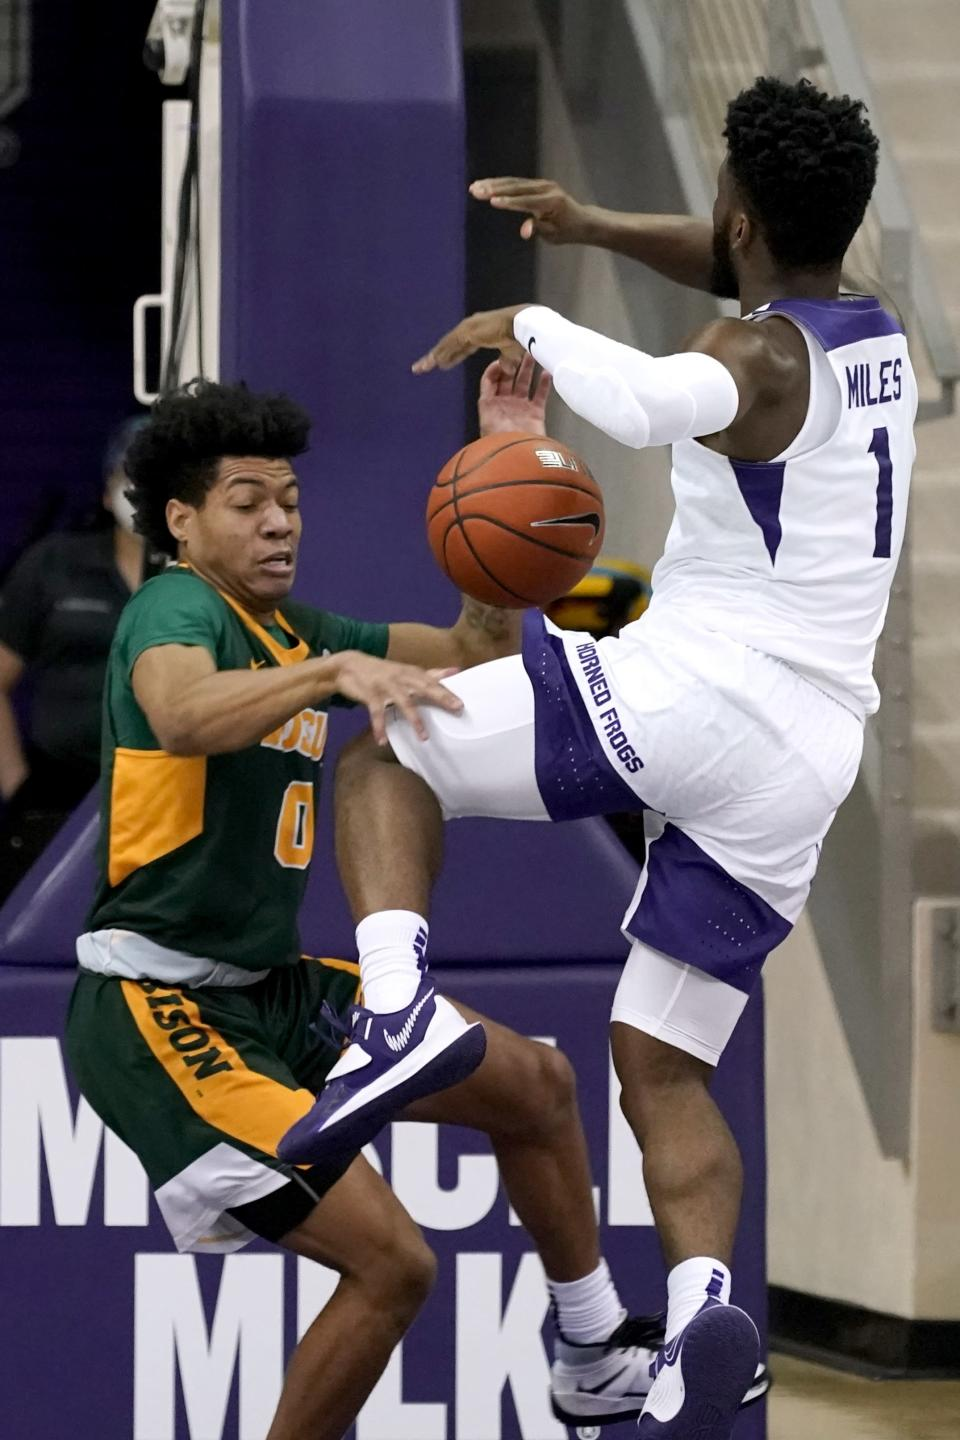 North Dakota State guard Dezmond McKinney (0) strips the ball away from TCU guard Mike Miles (1) as he drives to the basket for a shot in the first half of an NCAA college basketball game in Fort Worth, Texas, Tuesday, Dec. 22, 2020. (AP Photo/Tony Gutierrez)